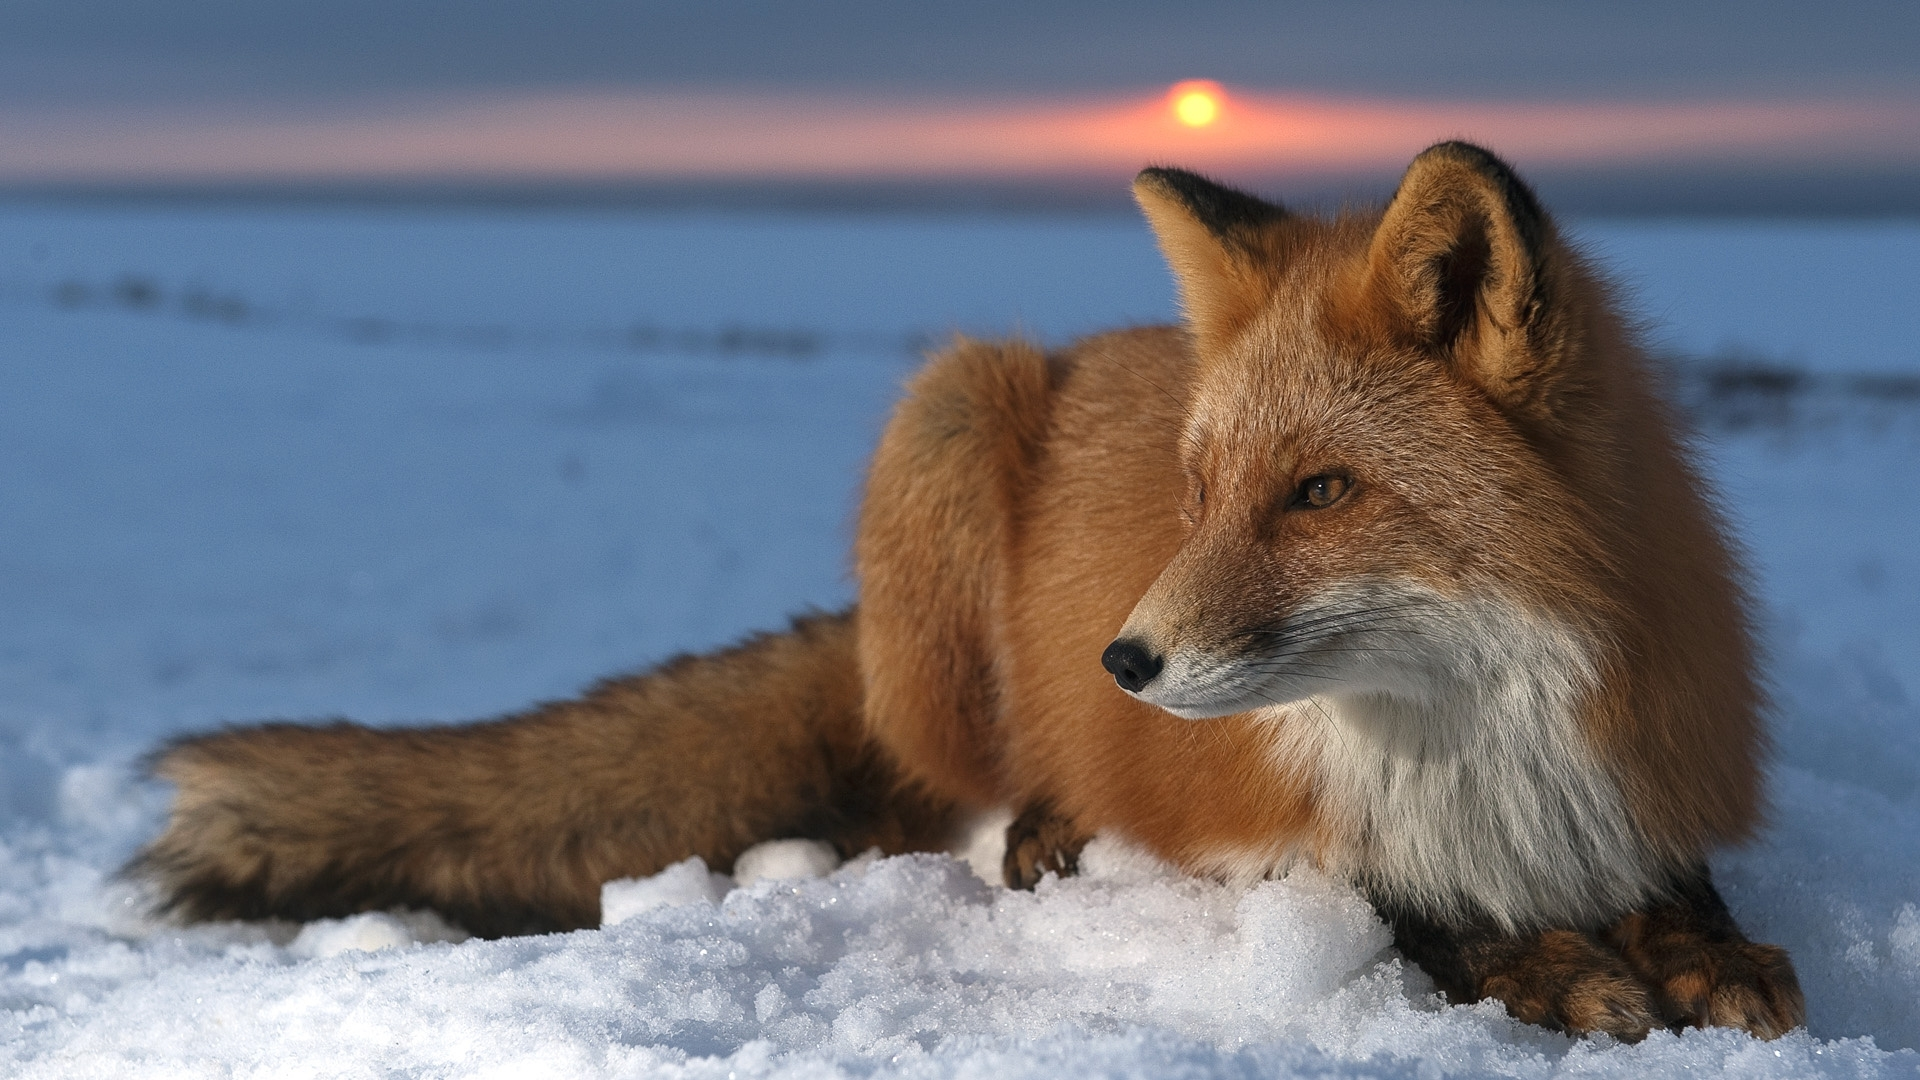 Fox Wallpaper with Snow Background